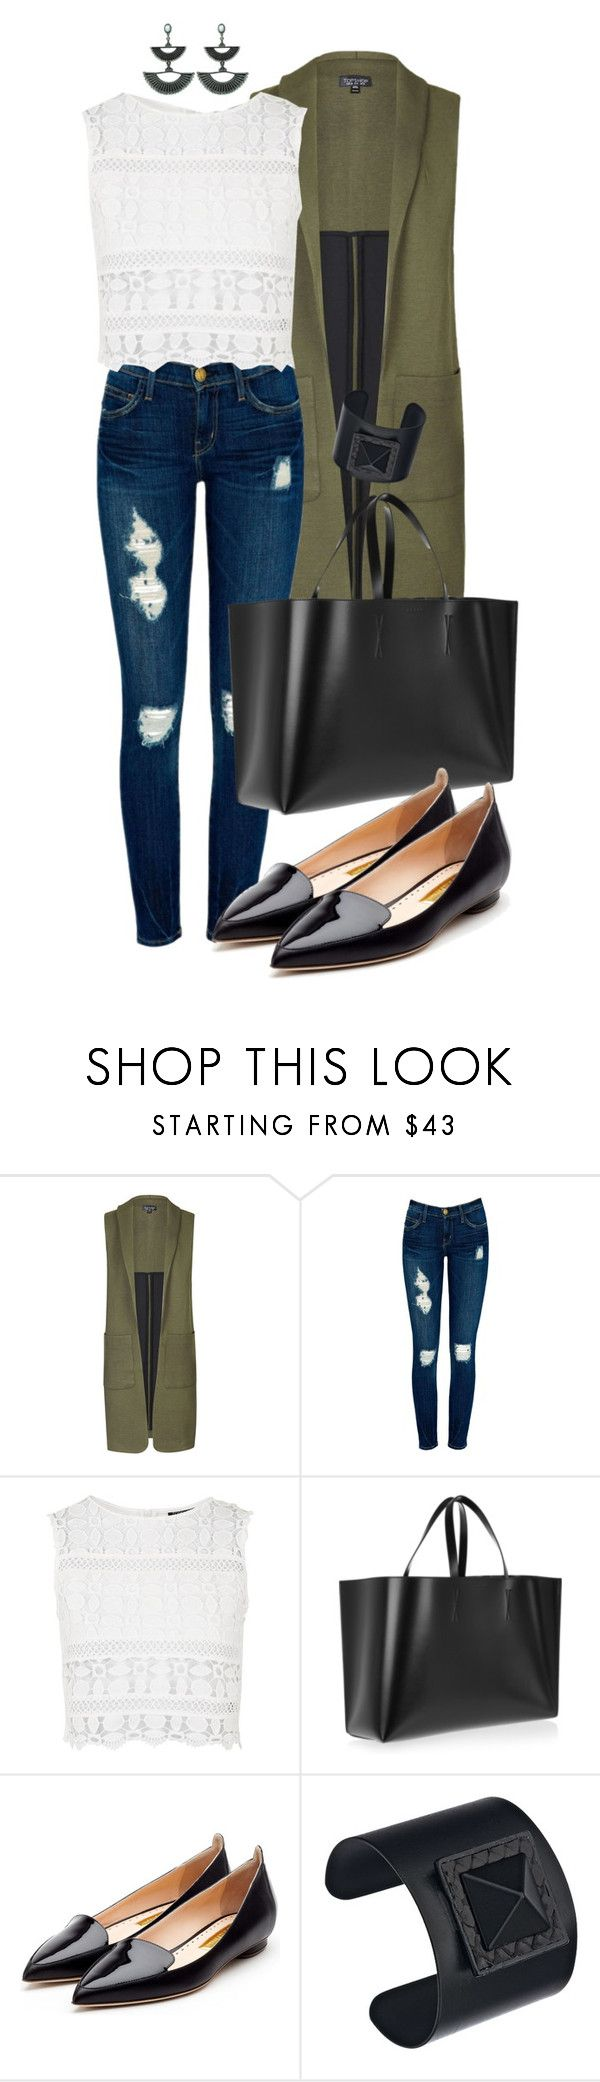 """""""Military Vest"""" by mayumi17 ❤ liked on Polyvore featuring Topshop, Current/Elliott, Marni, Rupert Sanderson and Ted Rossi"""